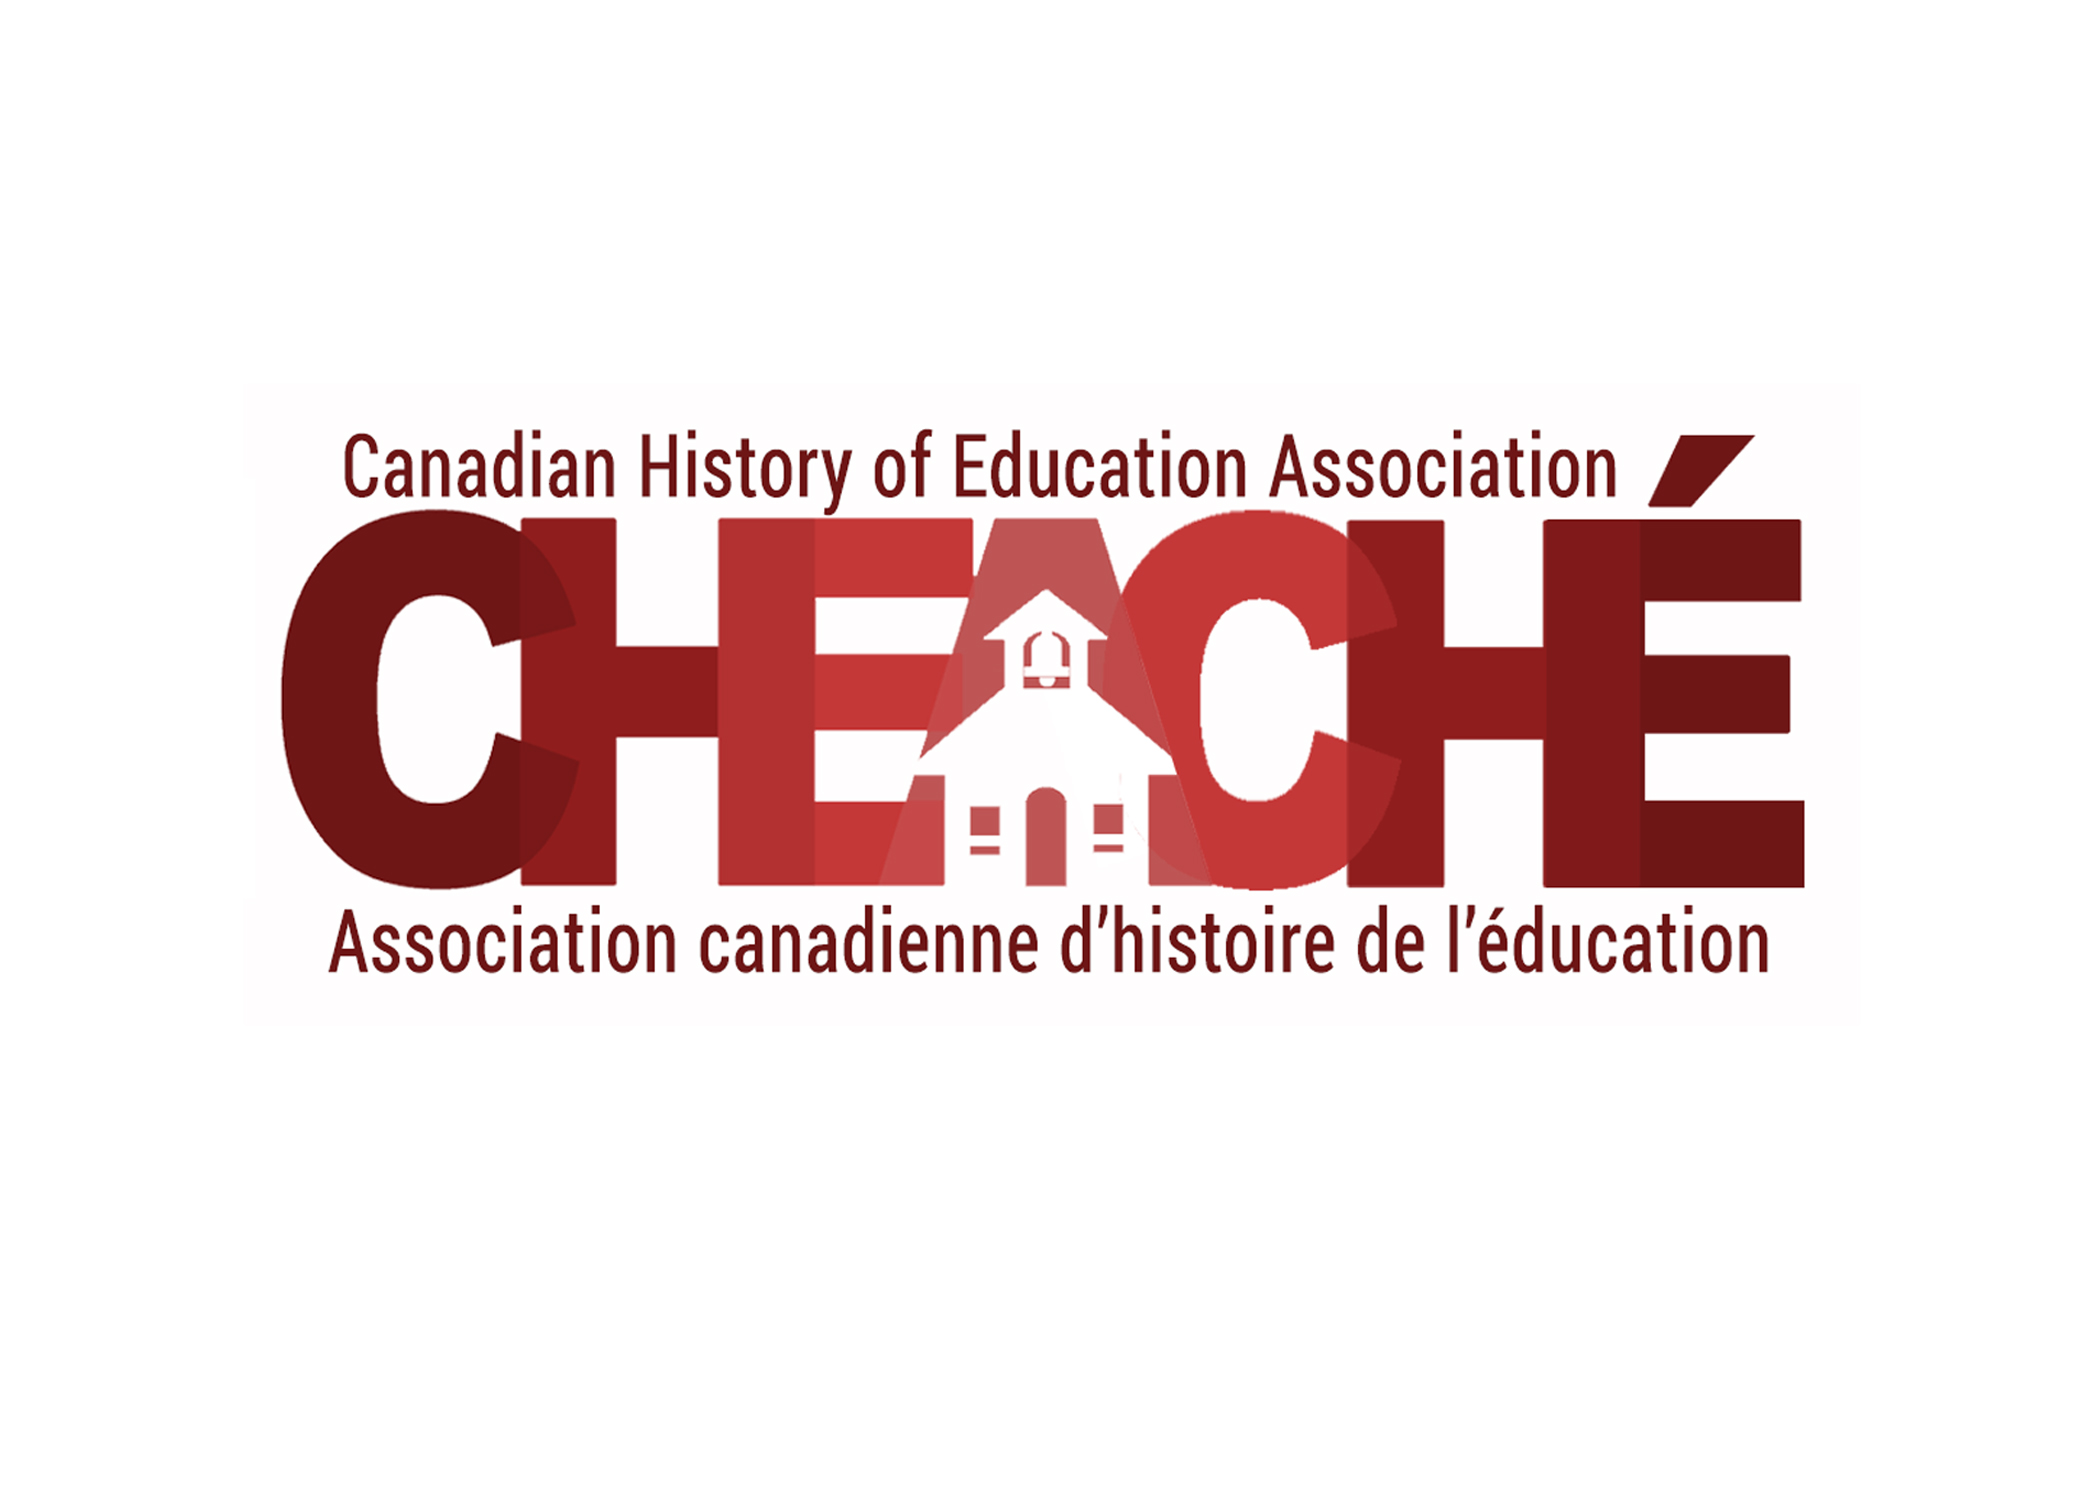 Canadian History of Education Association logo